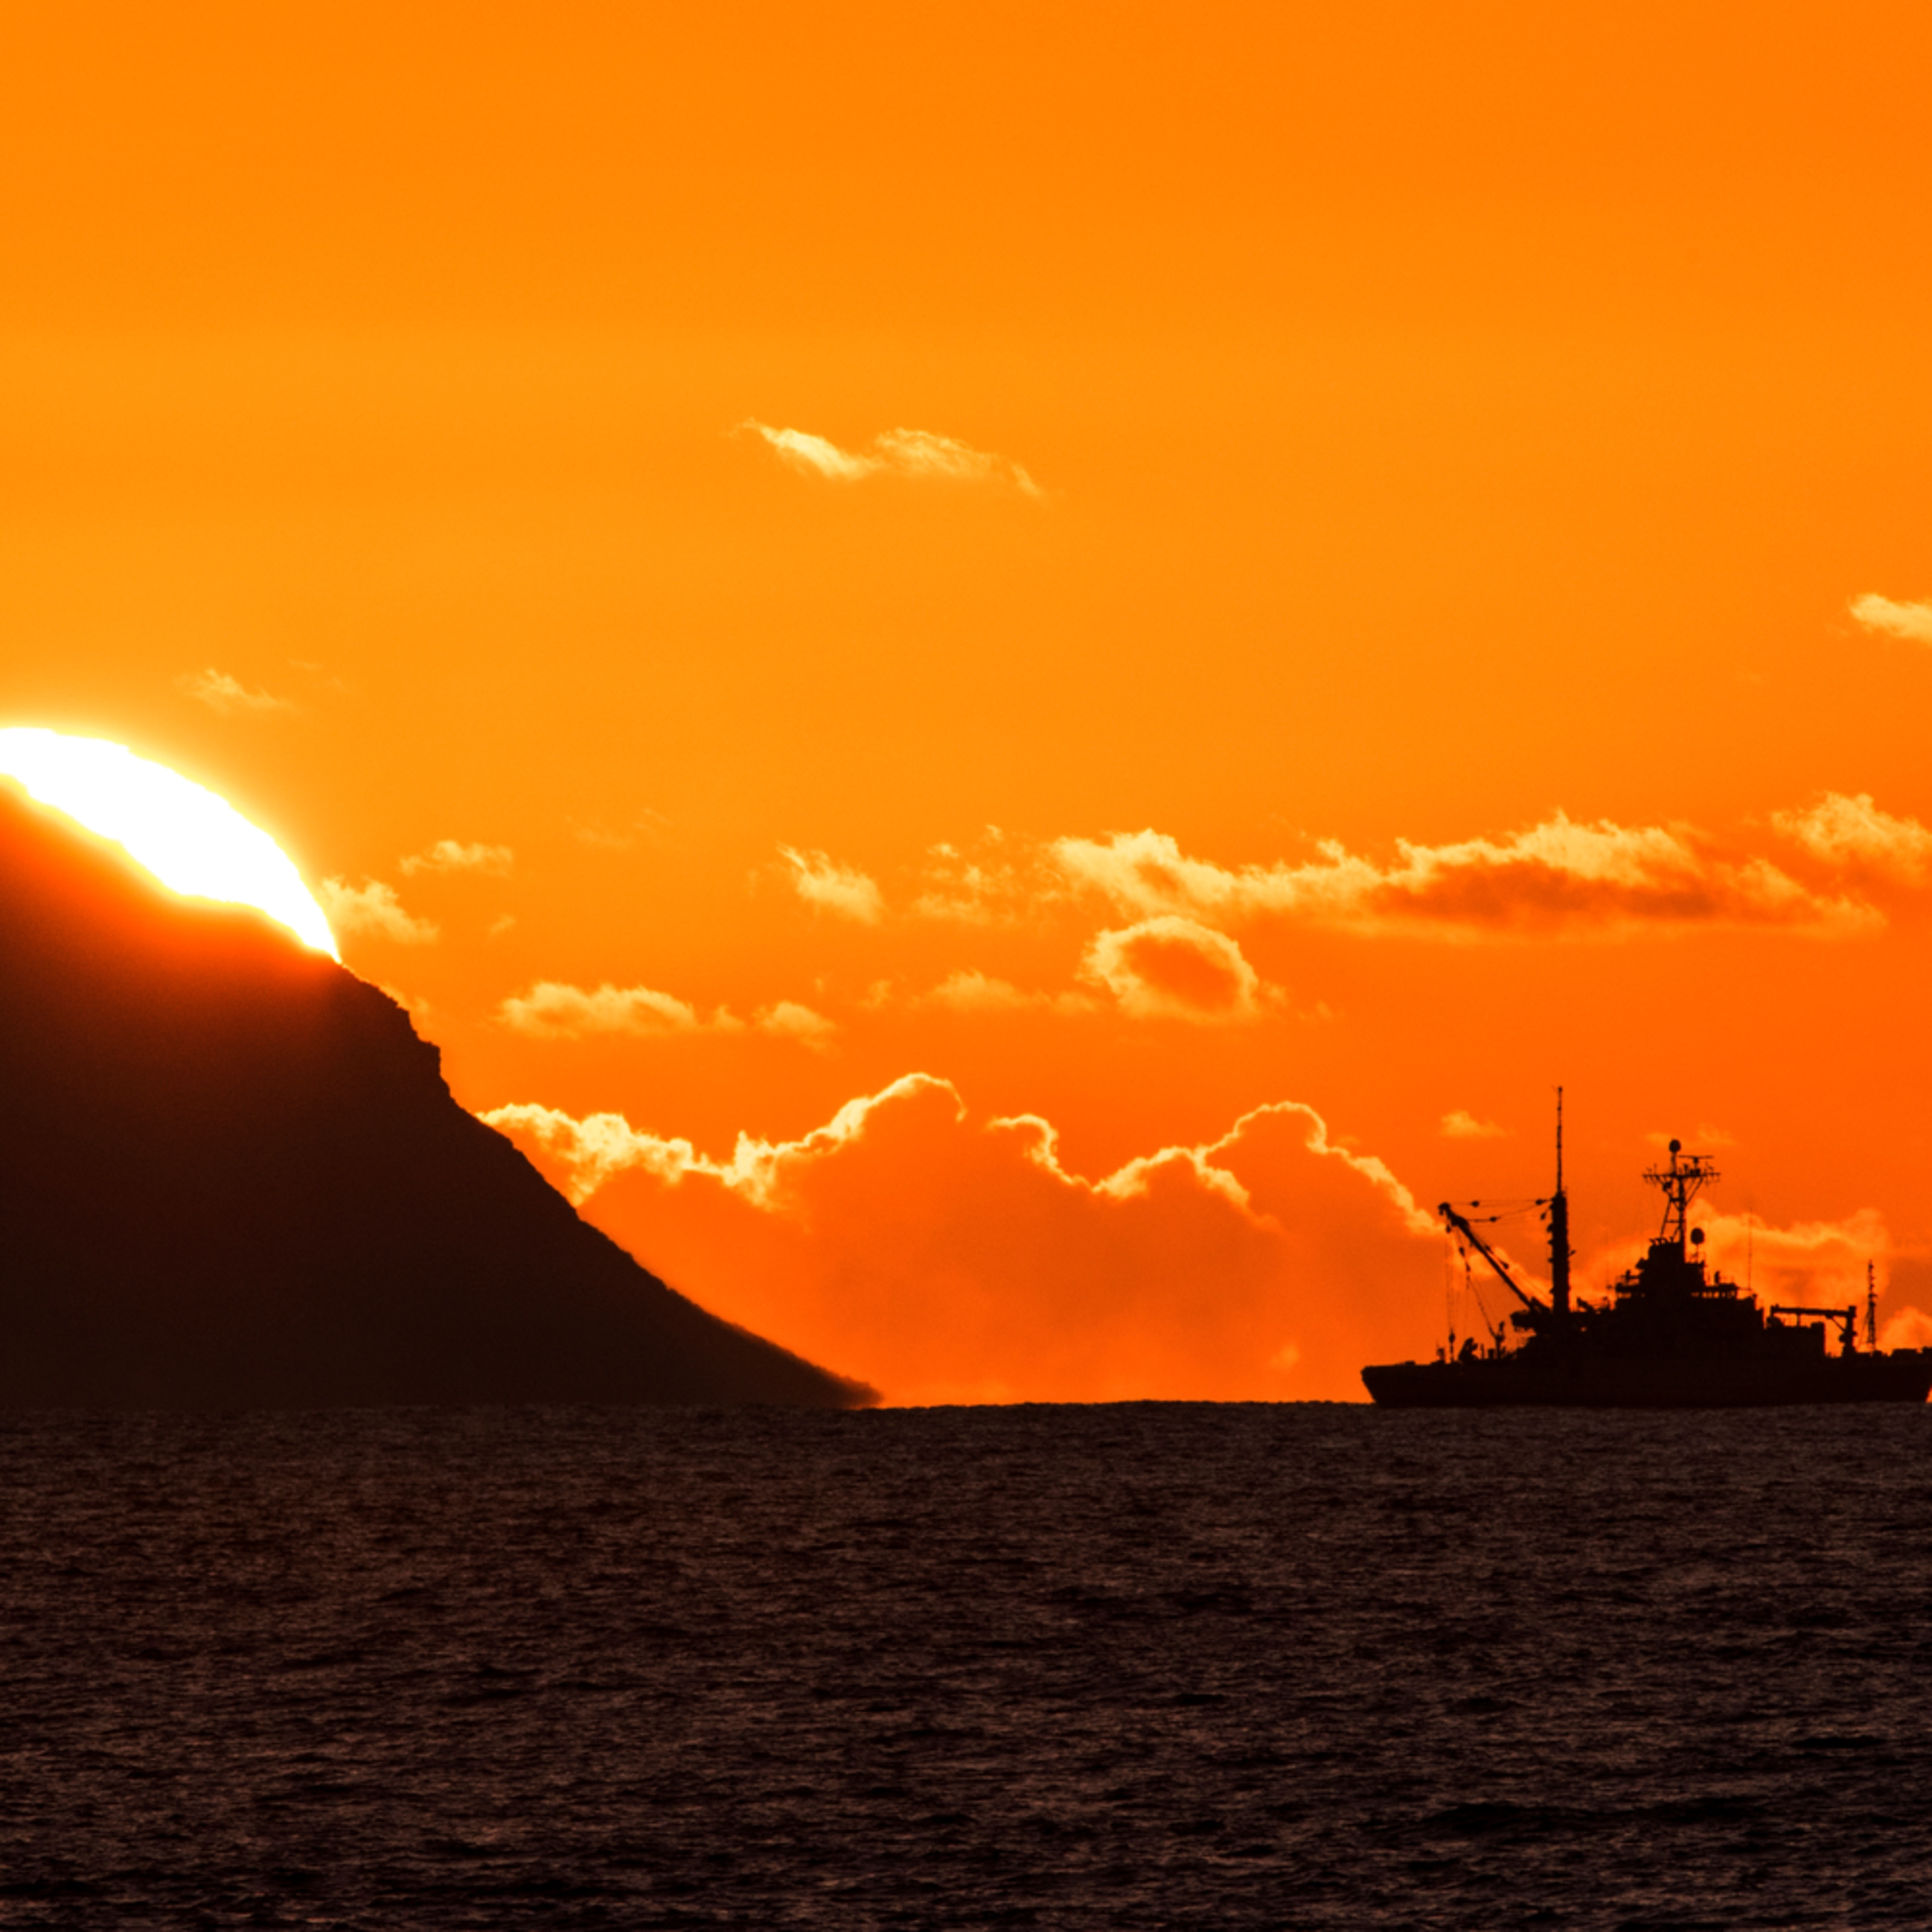 Sonar ship with sunset dzxkve